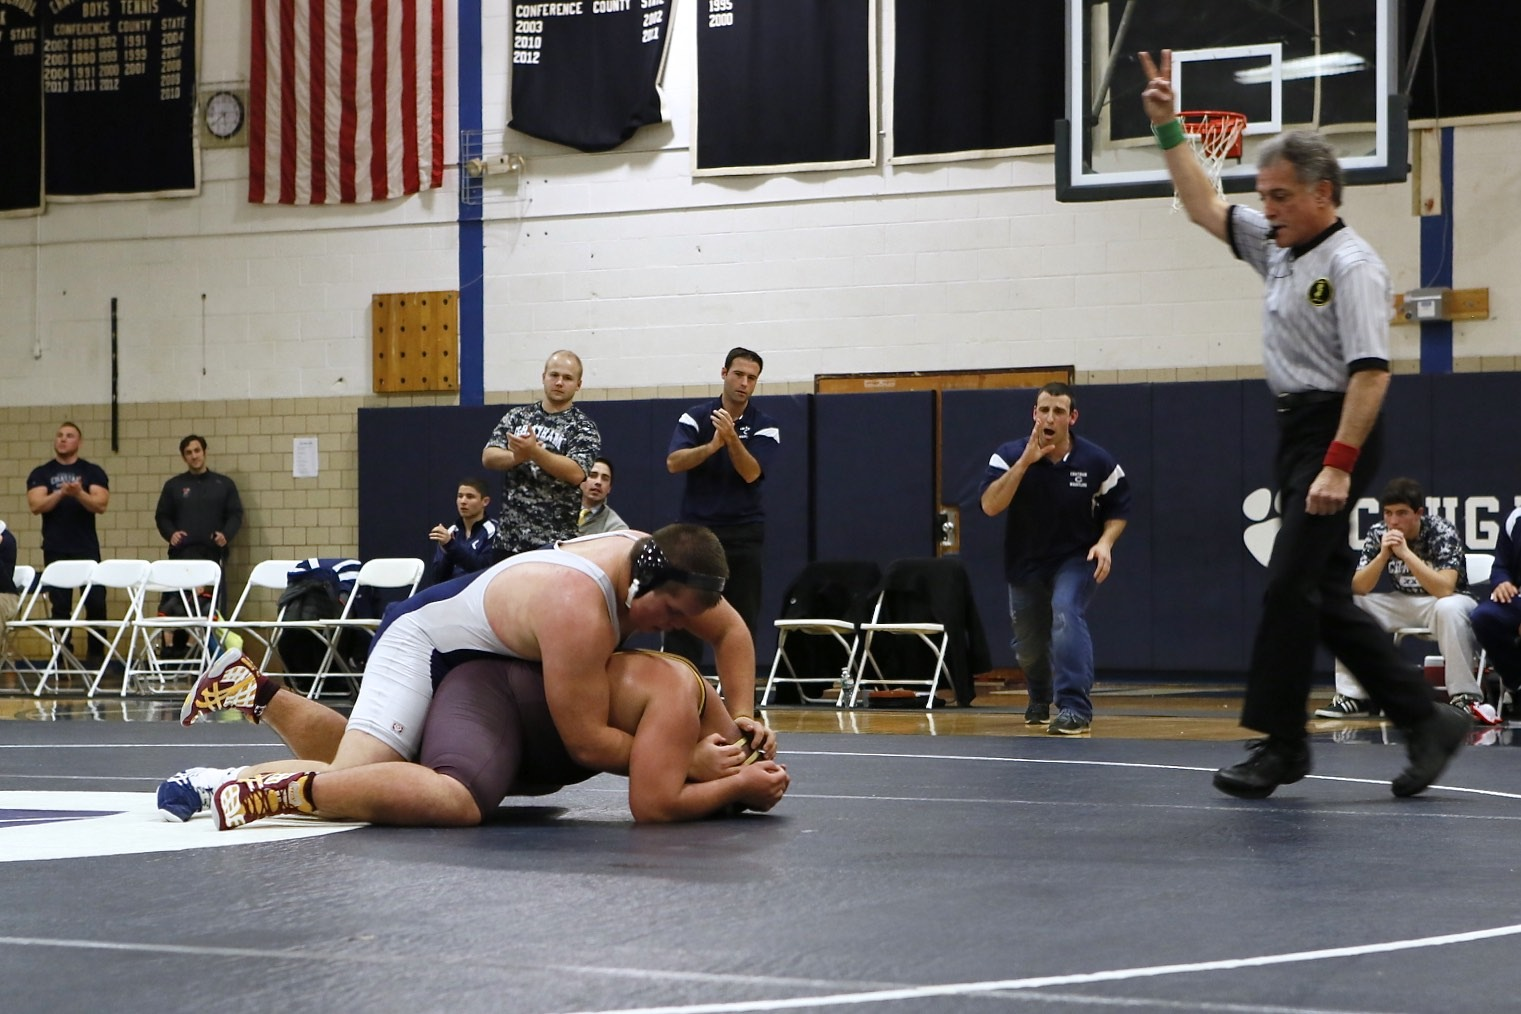 a9edef0cbbf99ac7829f_Wrestling_vs._Madison_1538.jpg